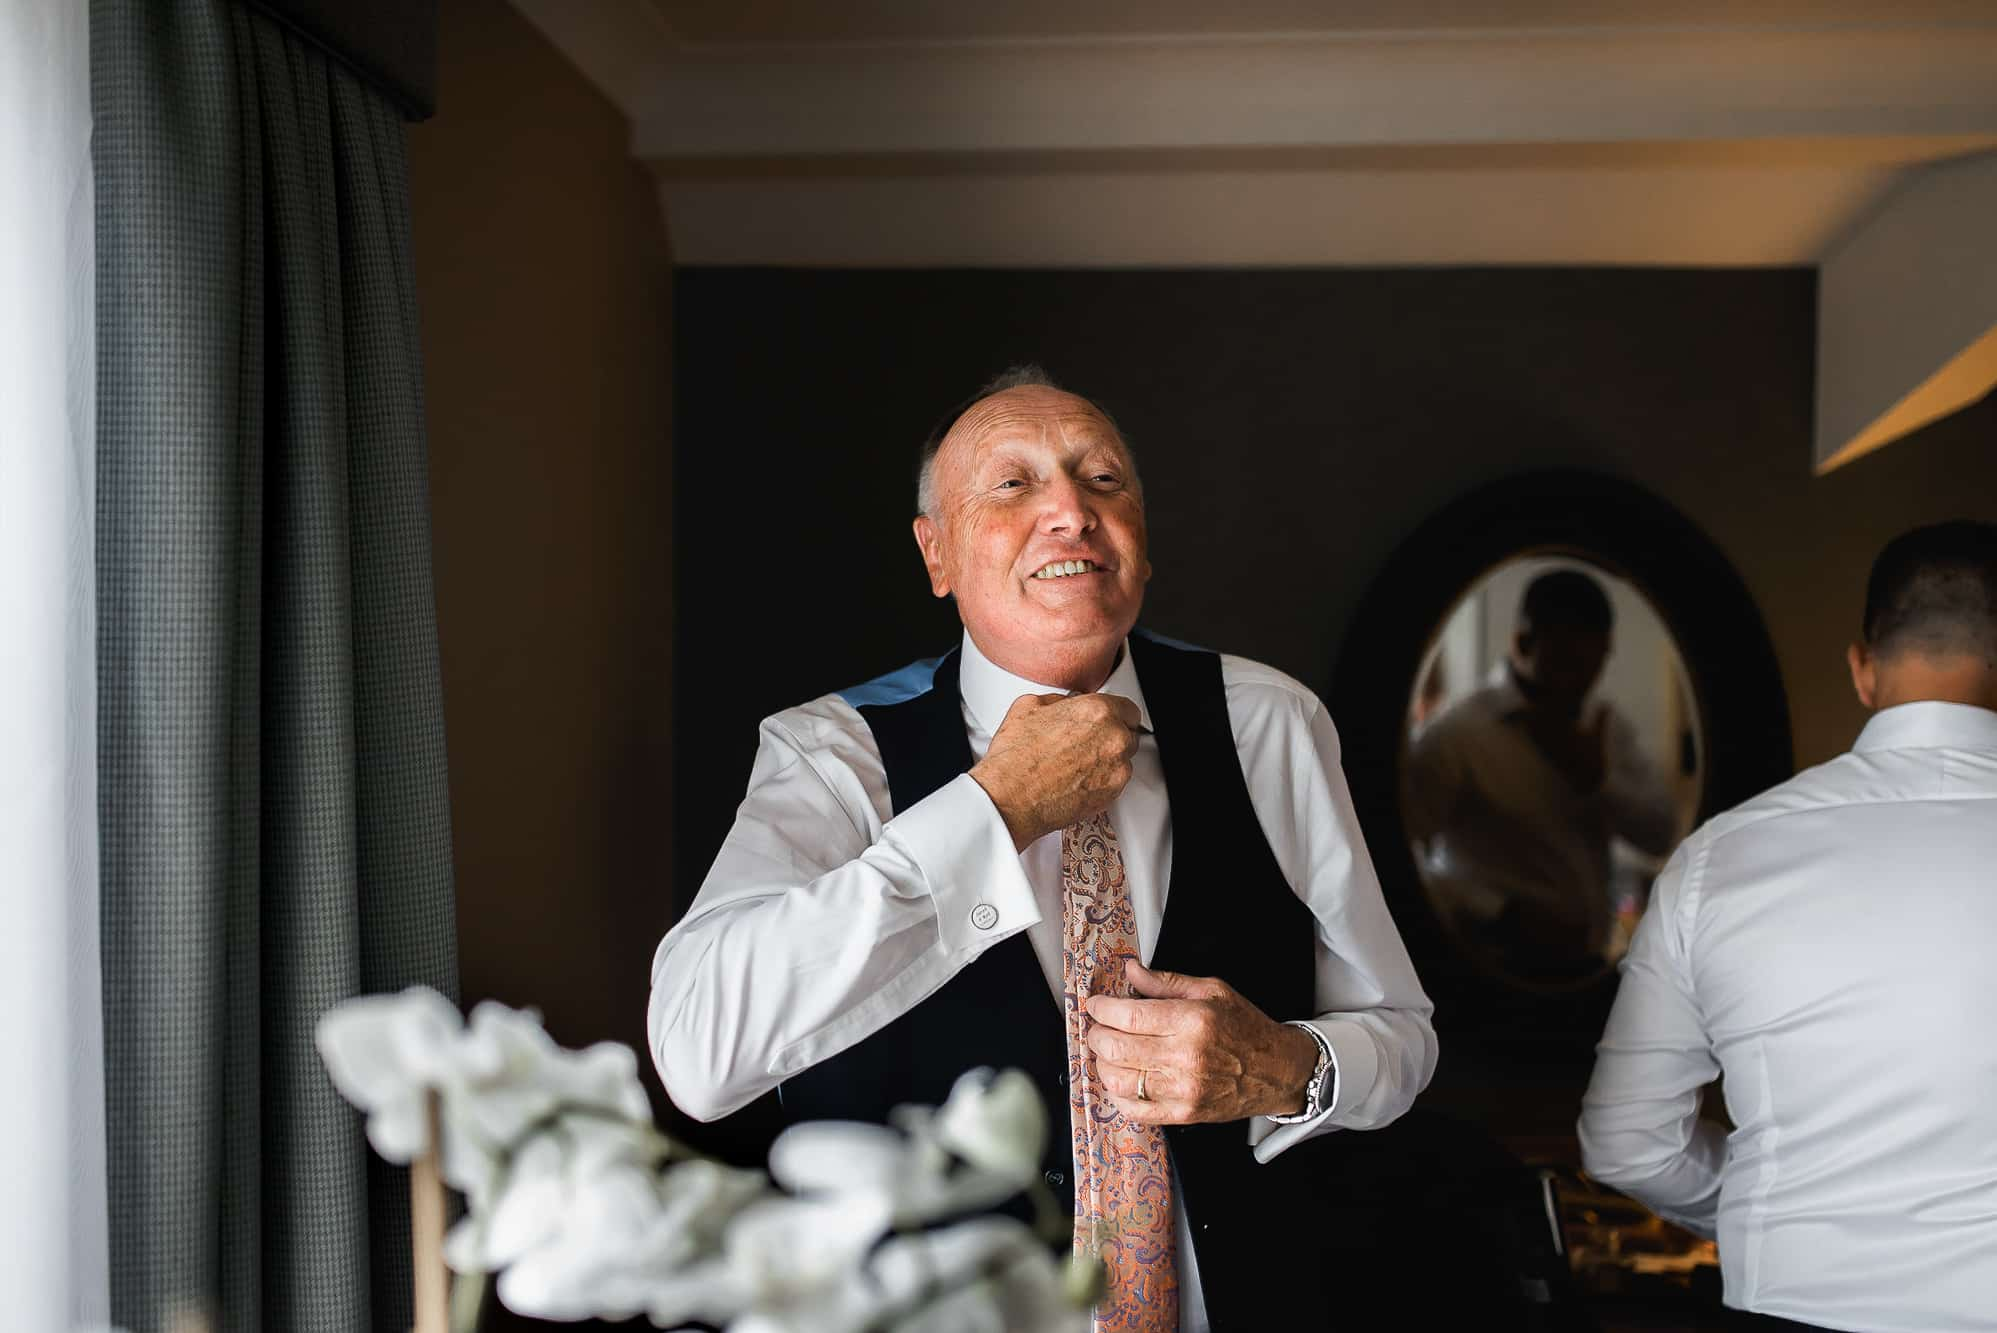 Grandad getting dressed into his suit